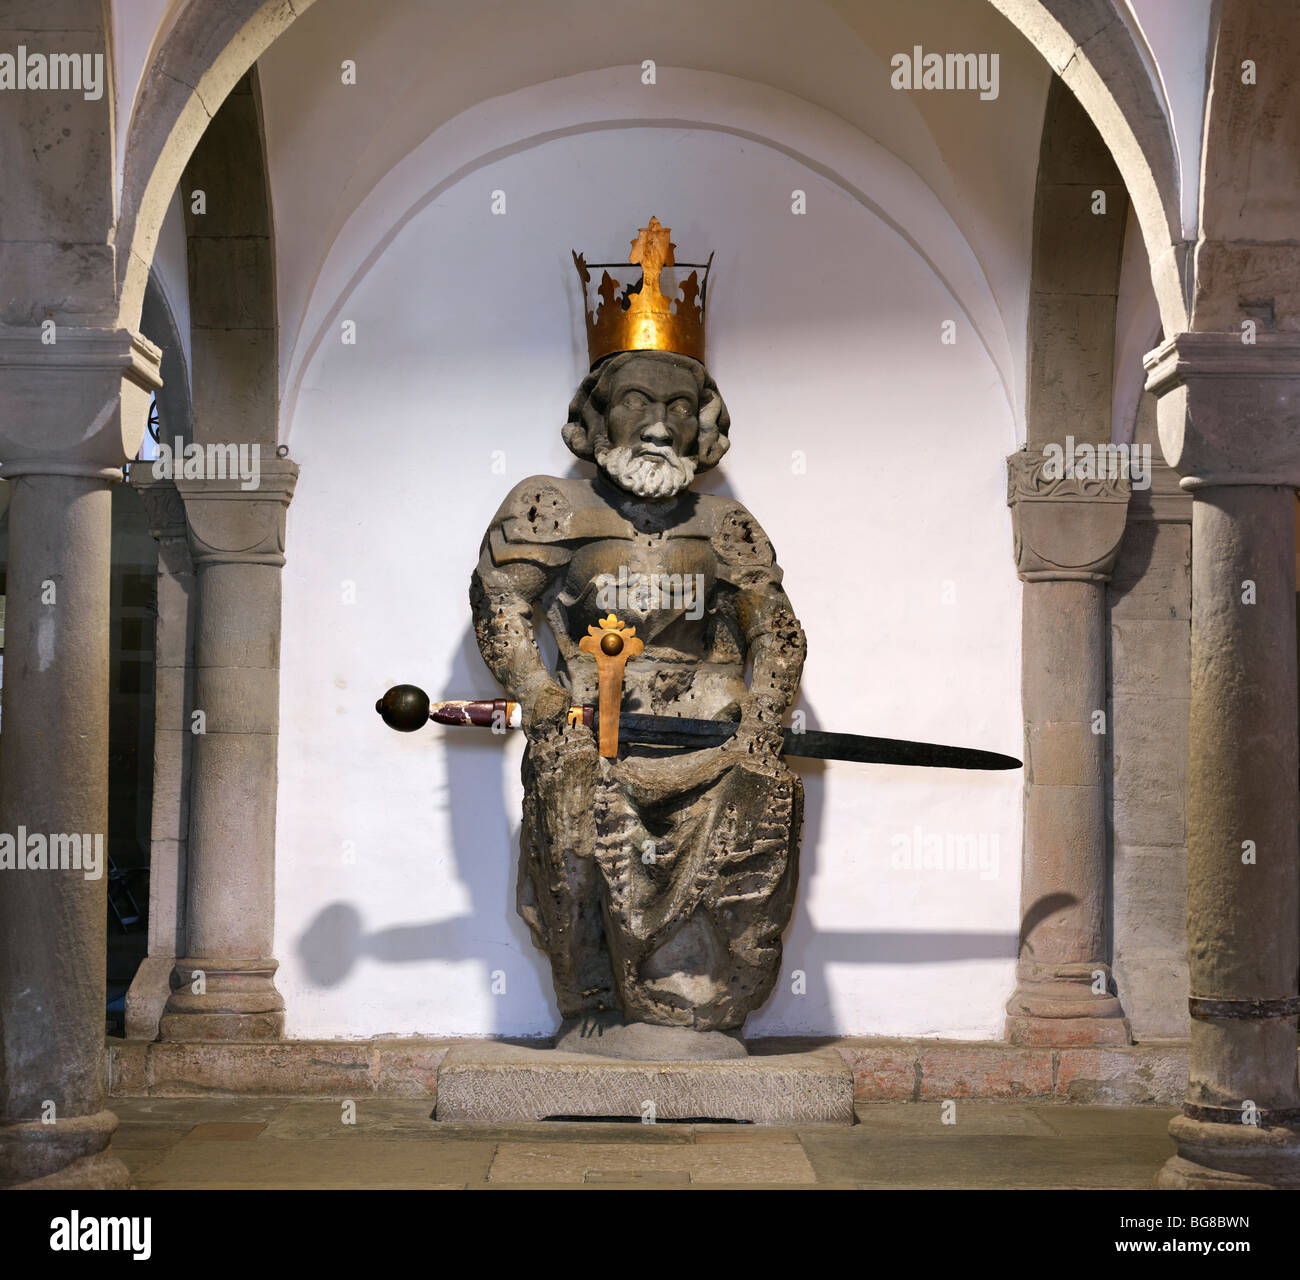 Switzerland, Zurich,statue Emperor Ludwig (Louis the German), the grandson of Charlemagne in the crypt of Fraumünster - Stock Image